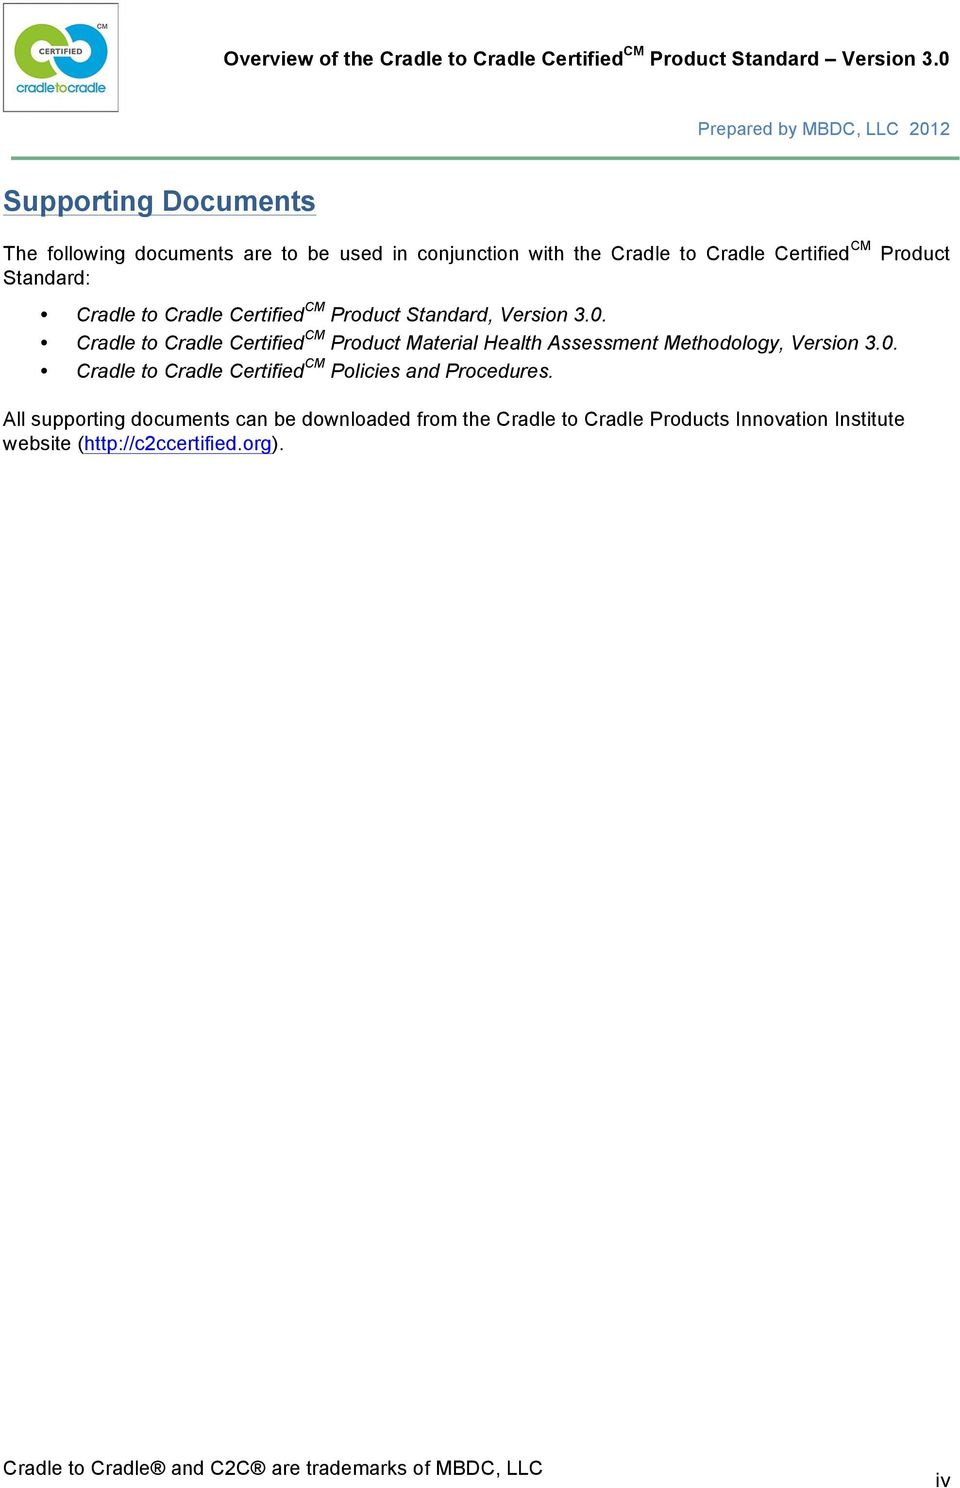 Cradle to Cradle Certified CM Product Material Health Assessment Methodology, Version 3.0.